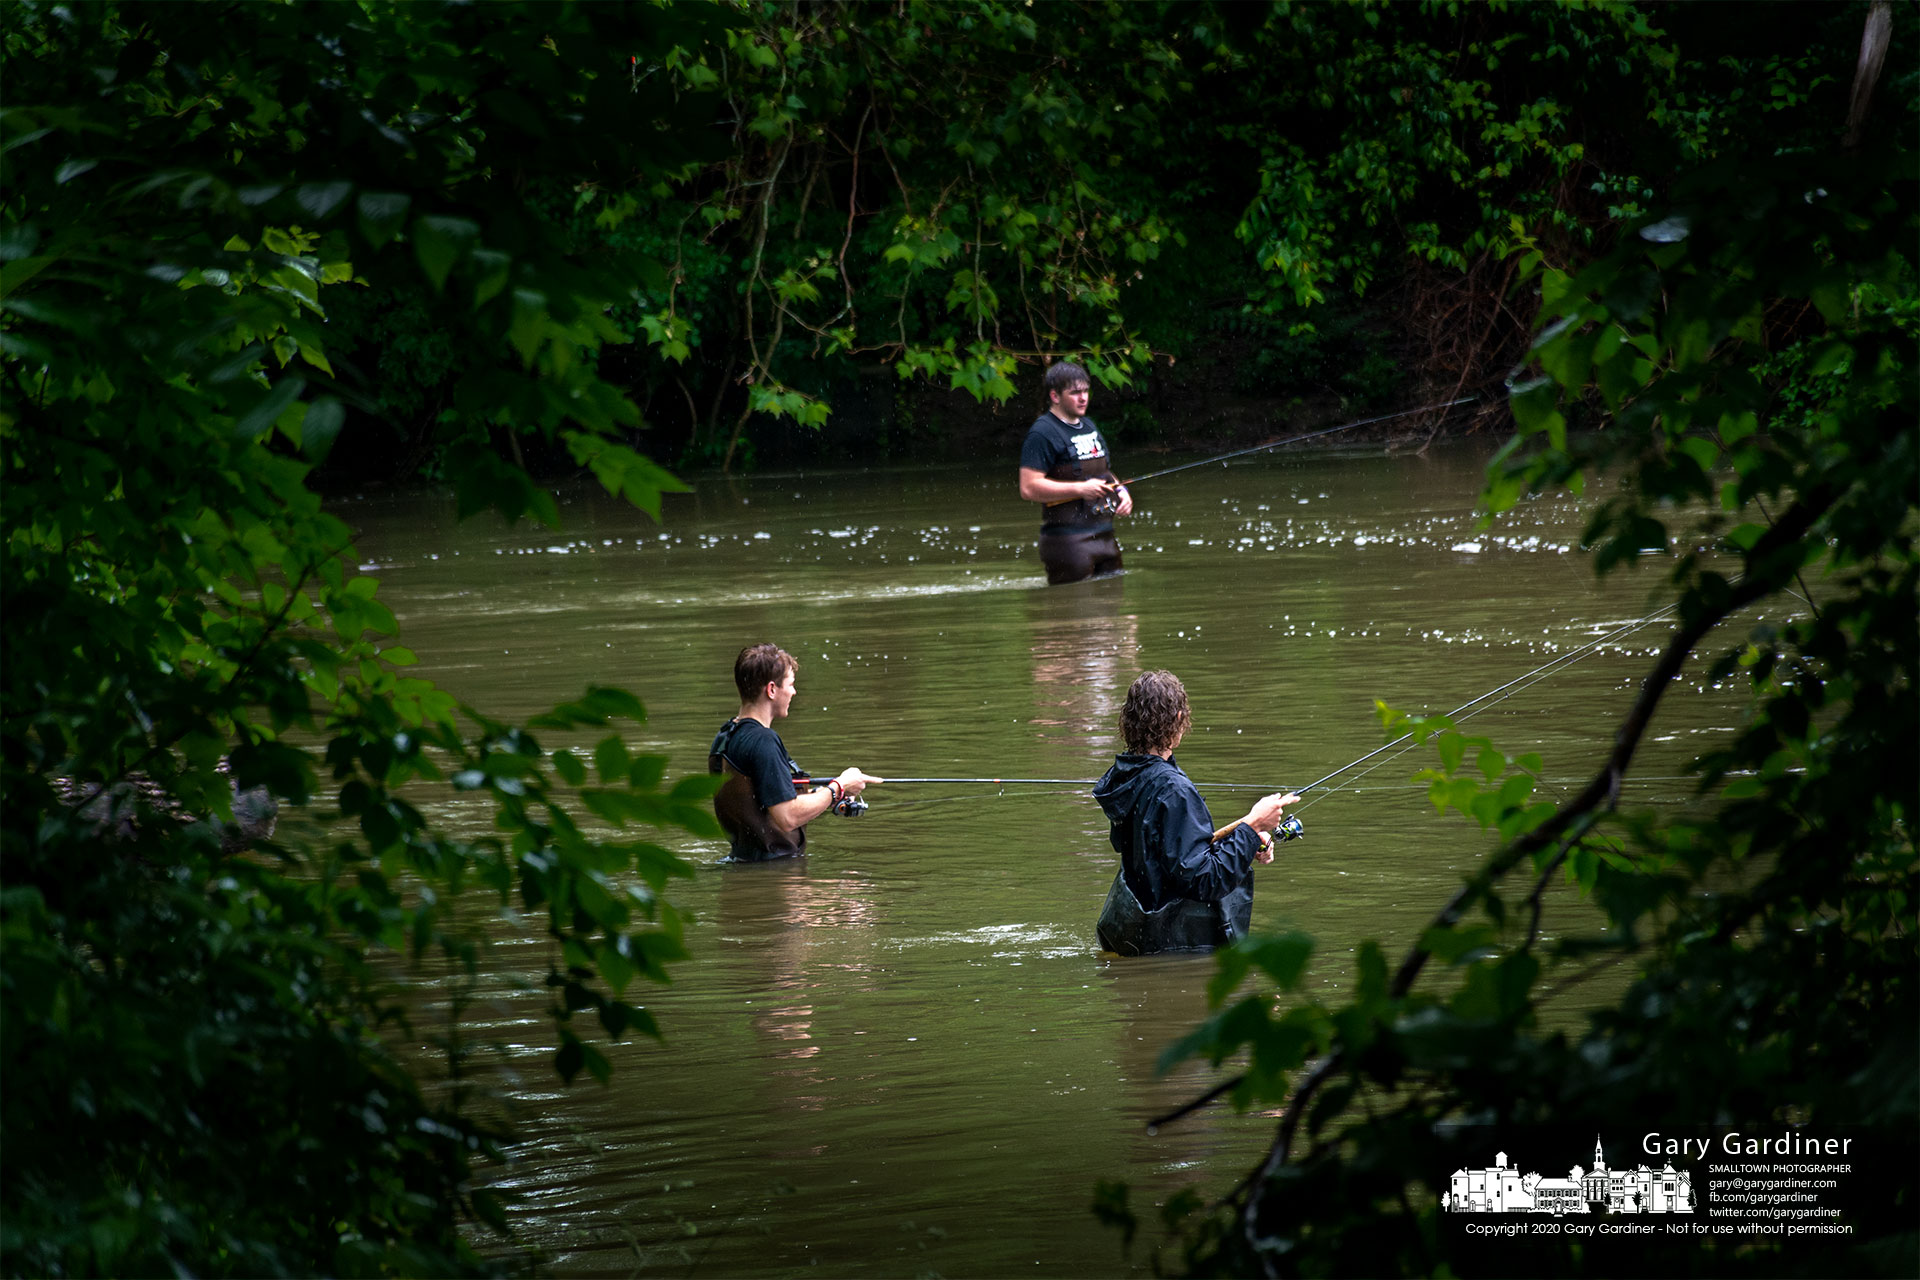 A trio of fishermen try their luck at fishing and navigating the higher than normal rushing waters below the dam at Alum Creek Park in Westerville. My Final Photo for June 9, 2021.